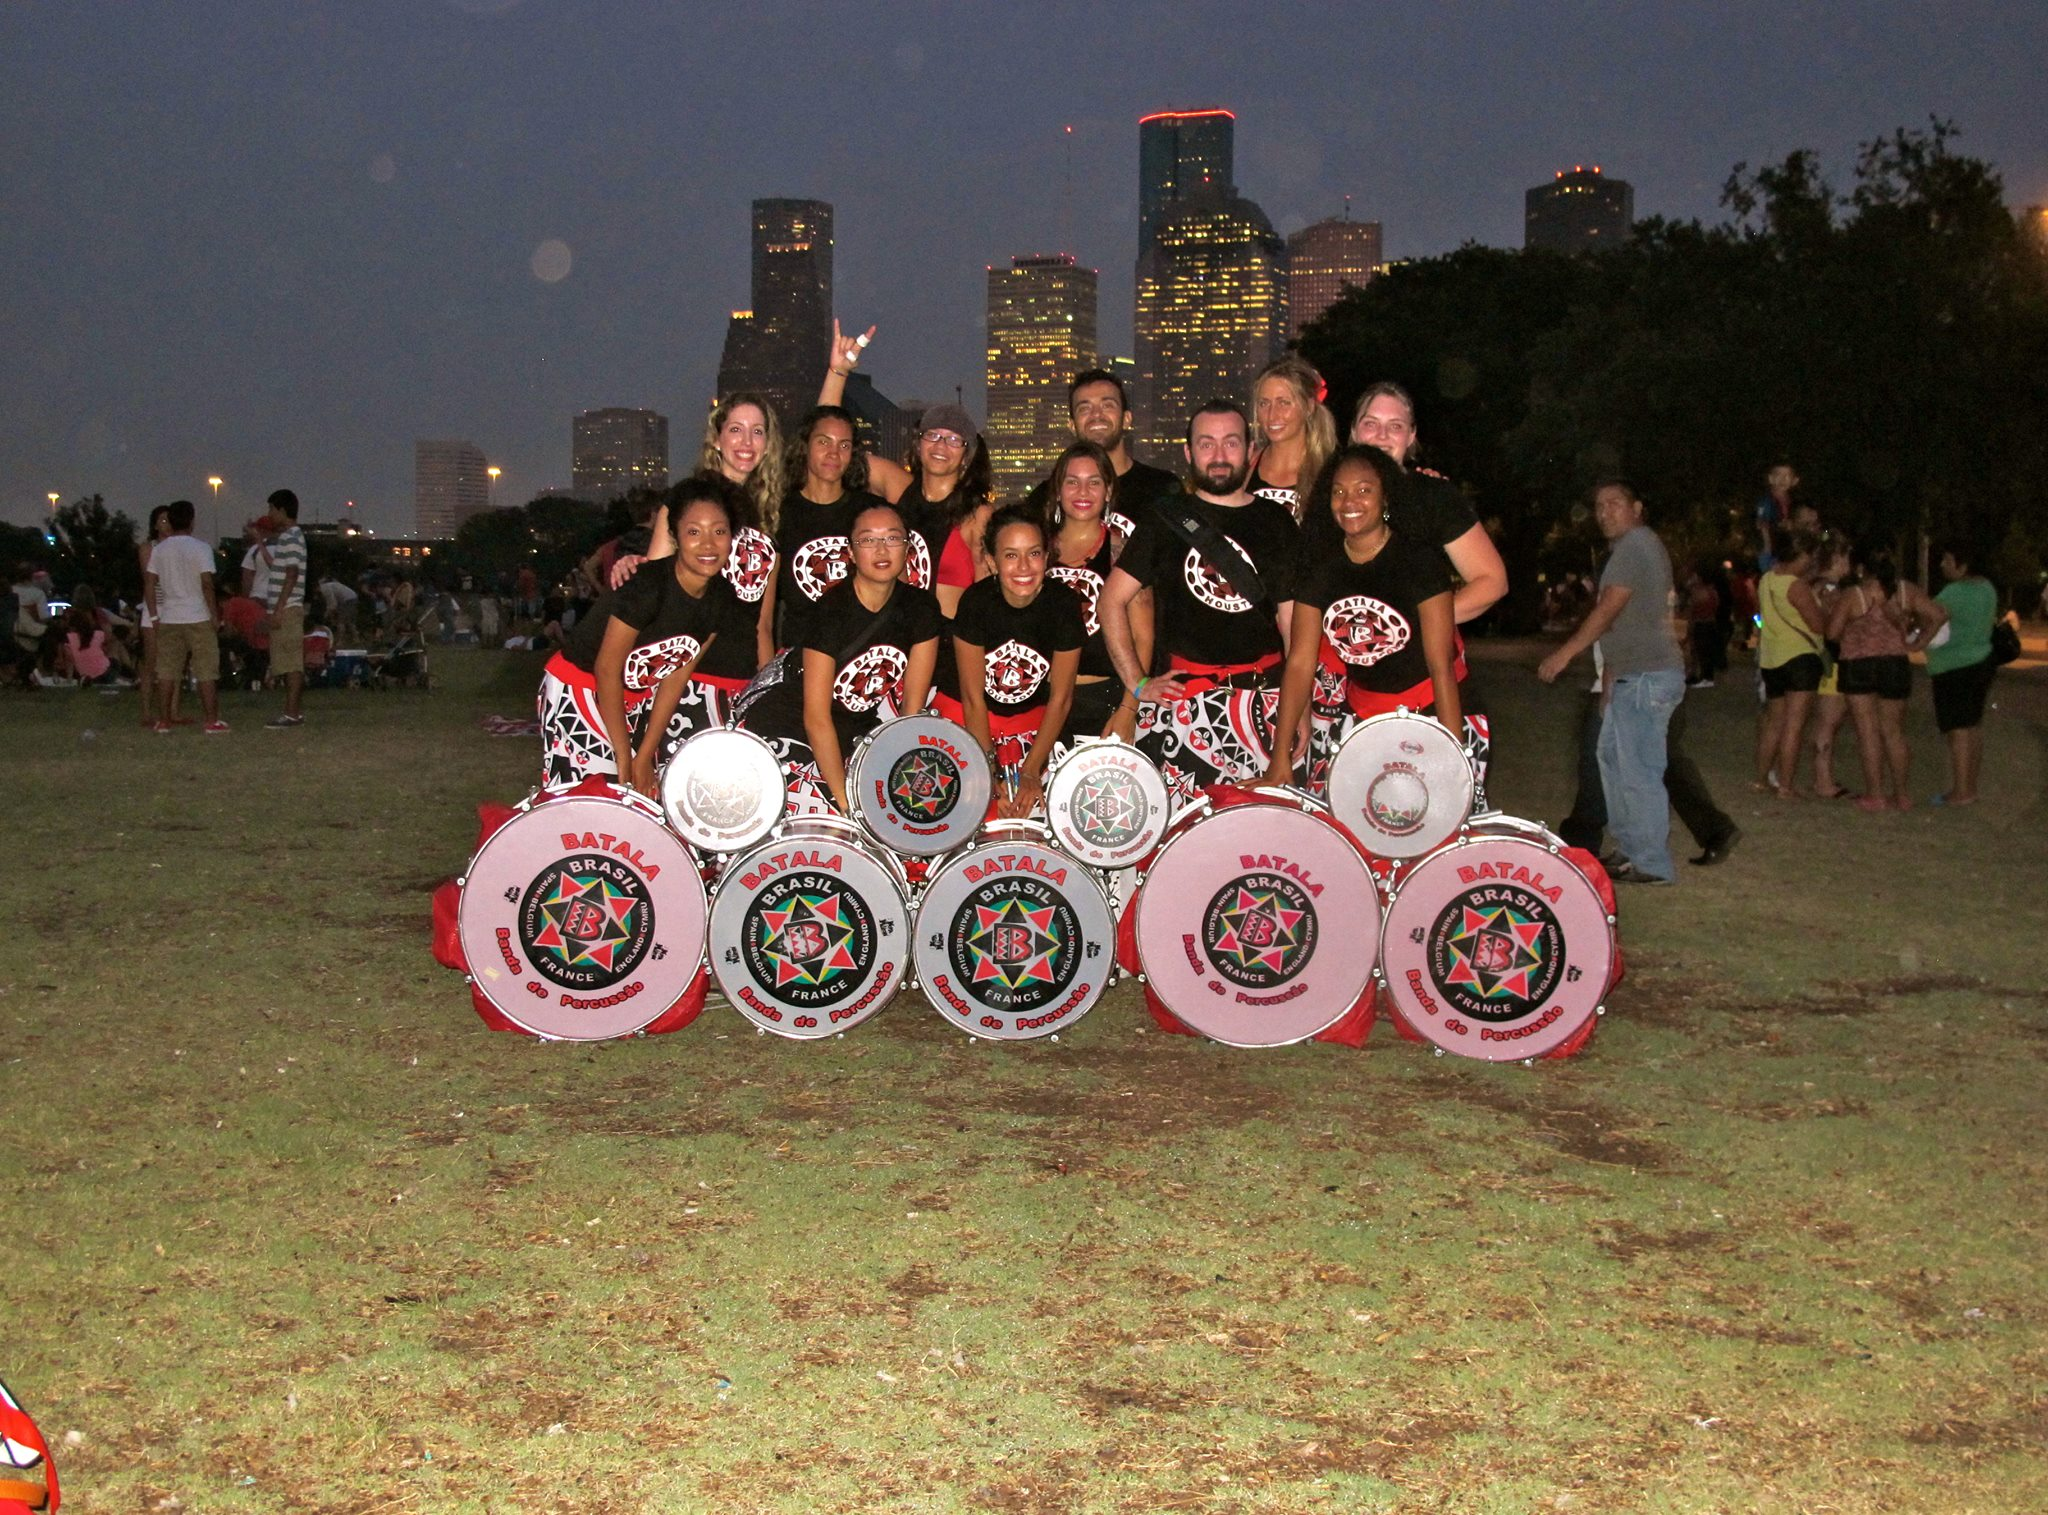 Batala Houston at night